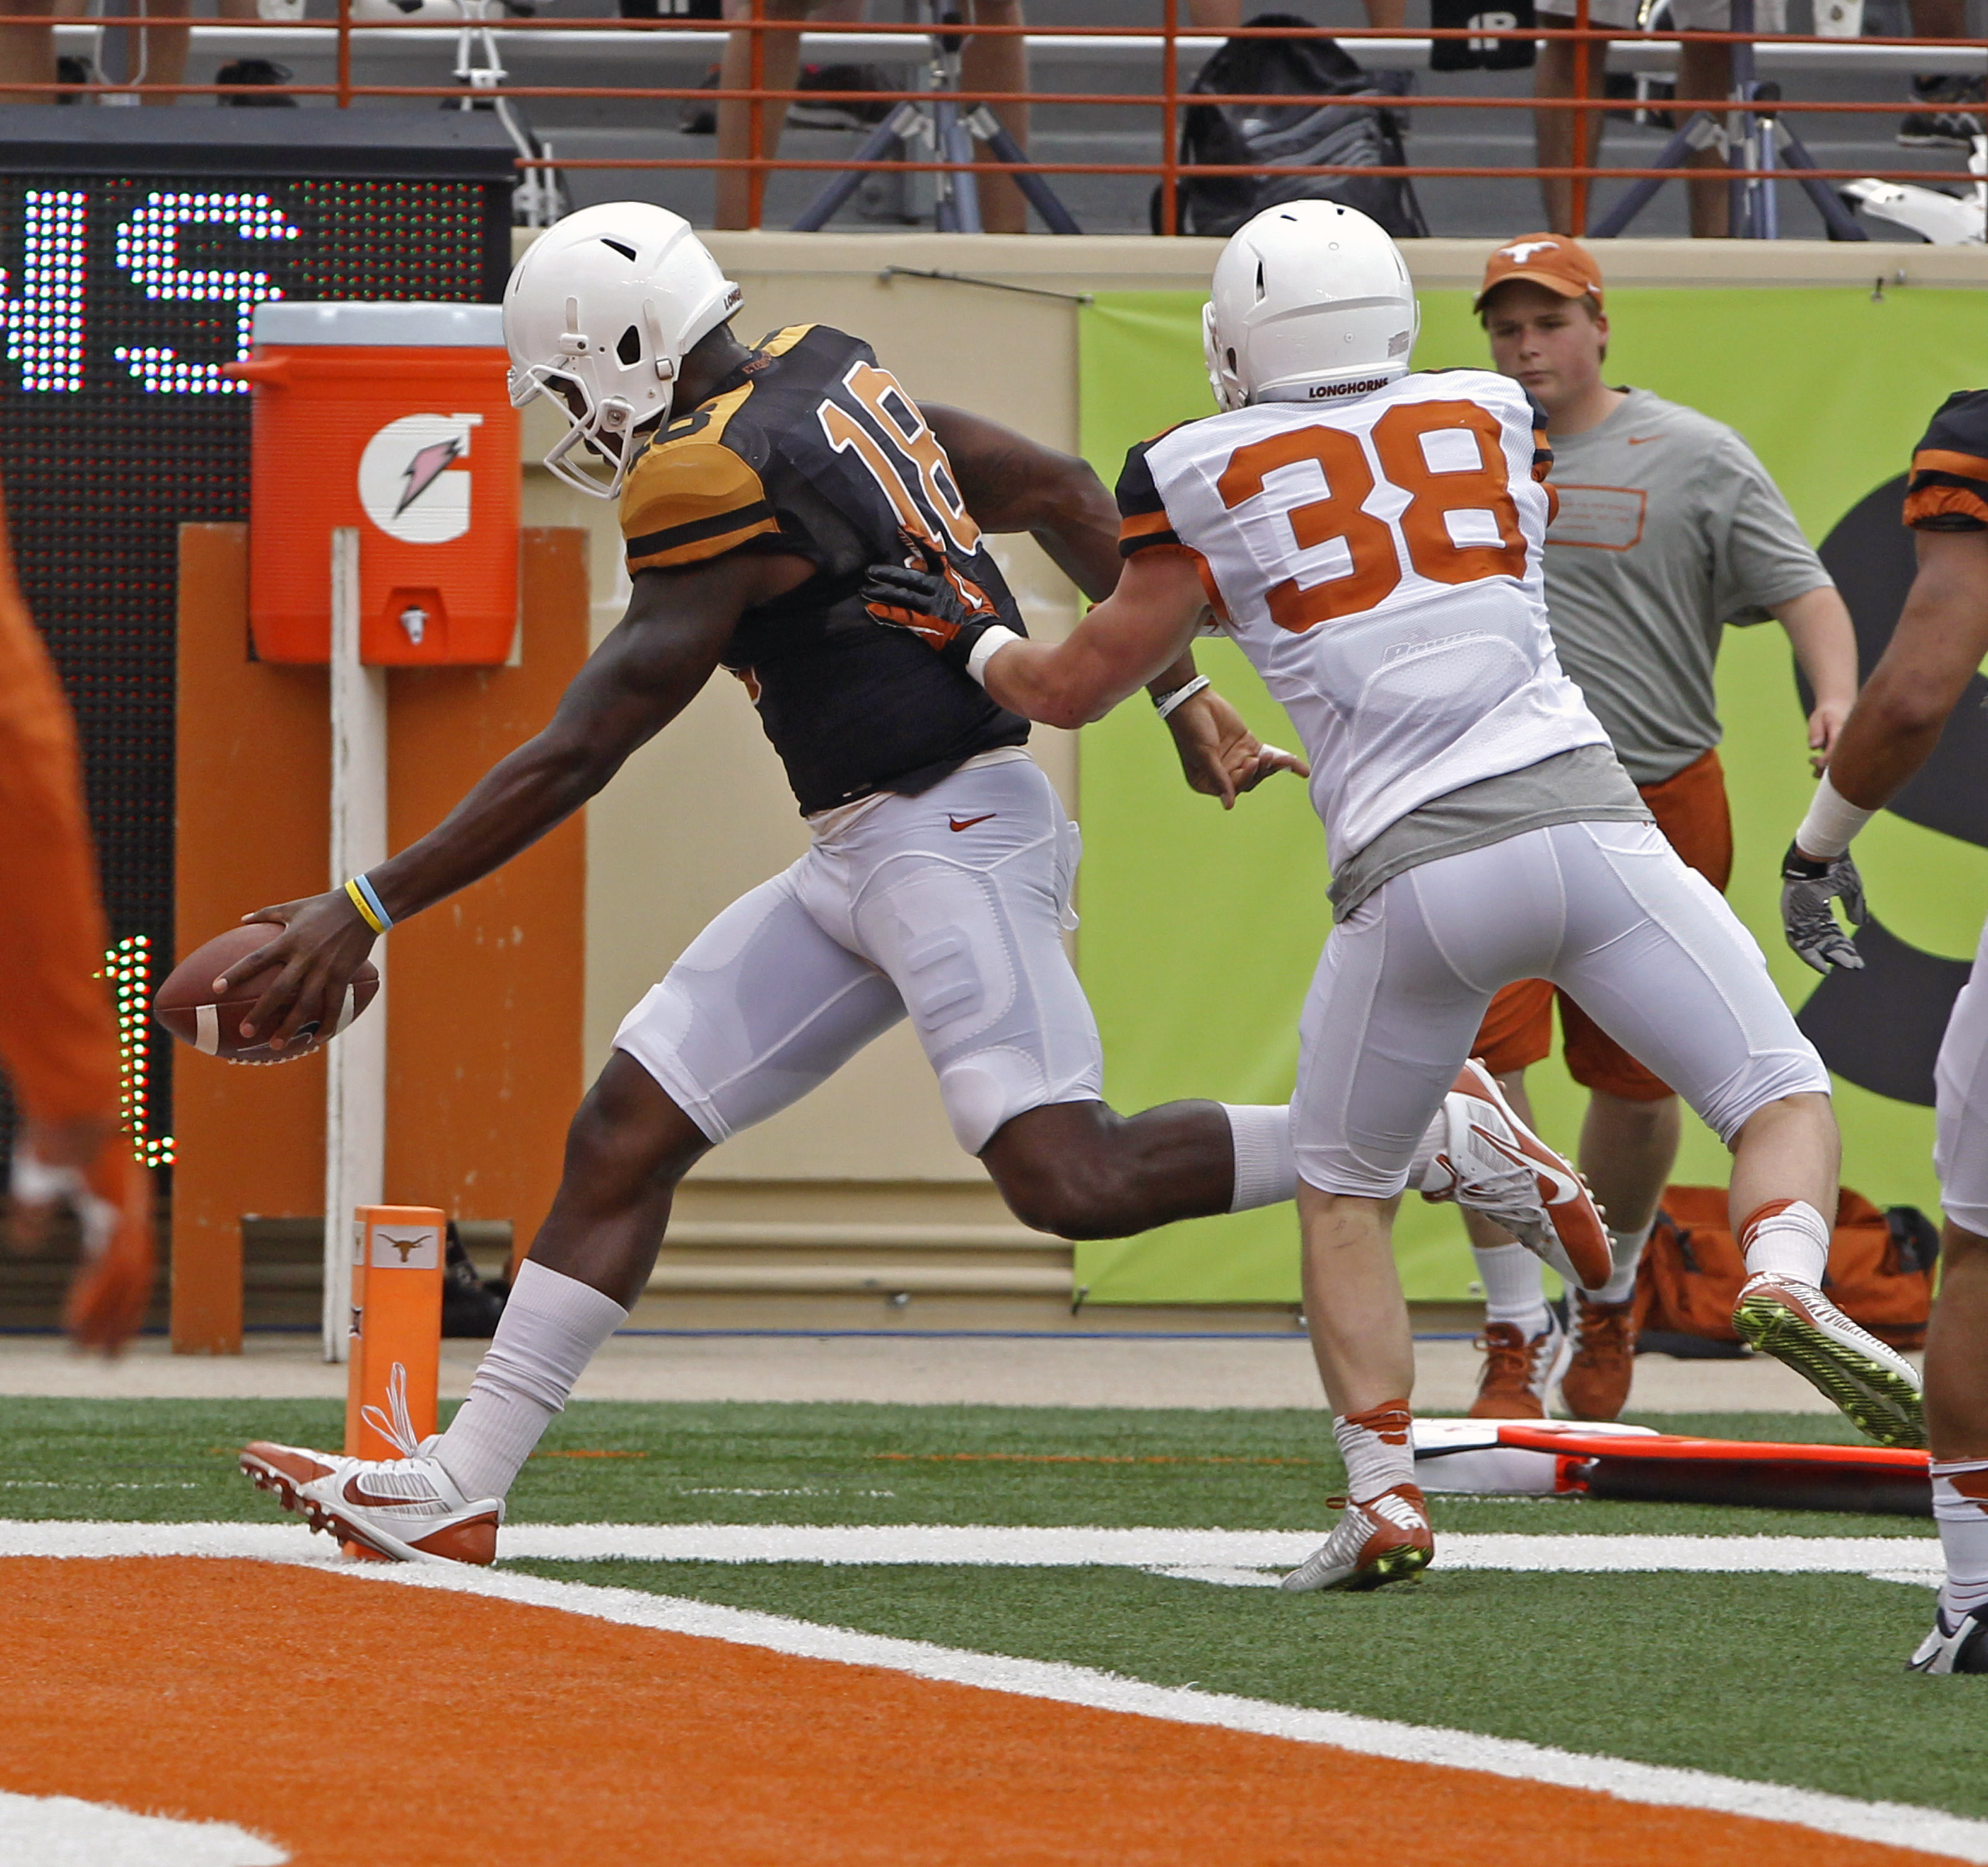 Texas orange quarterback Tyrone Swoopes (18) scores a touchdown against Texas white player Tyler Lee (38) during the first quarter of Texas' Orange and White spring NCAA college football game, Saturday, April 18, 2015, in Austin, Texas. (AP Photo/Michael